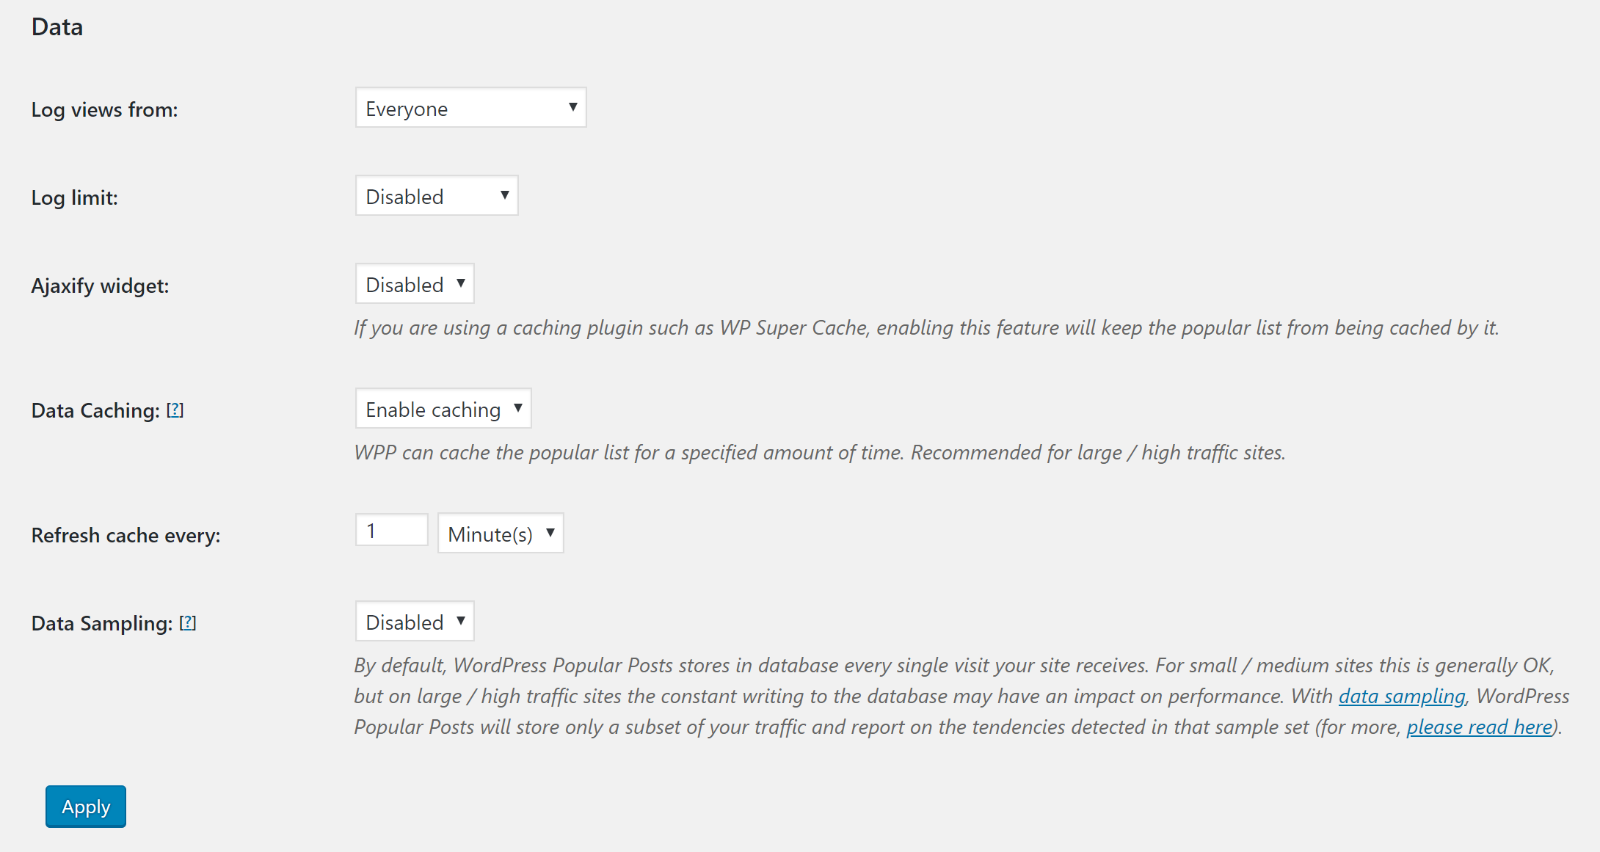 WordPress Popular Posts settings